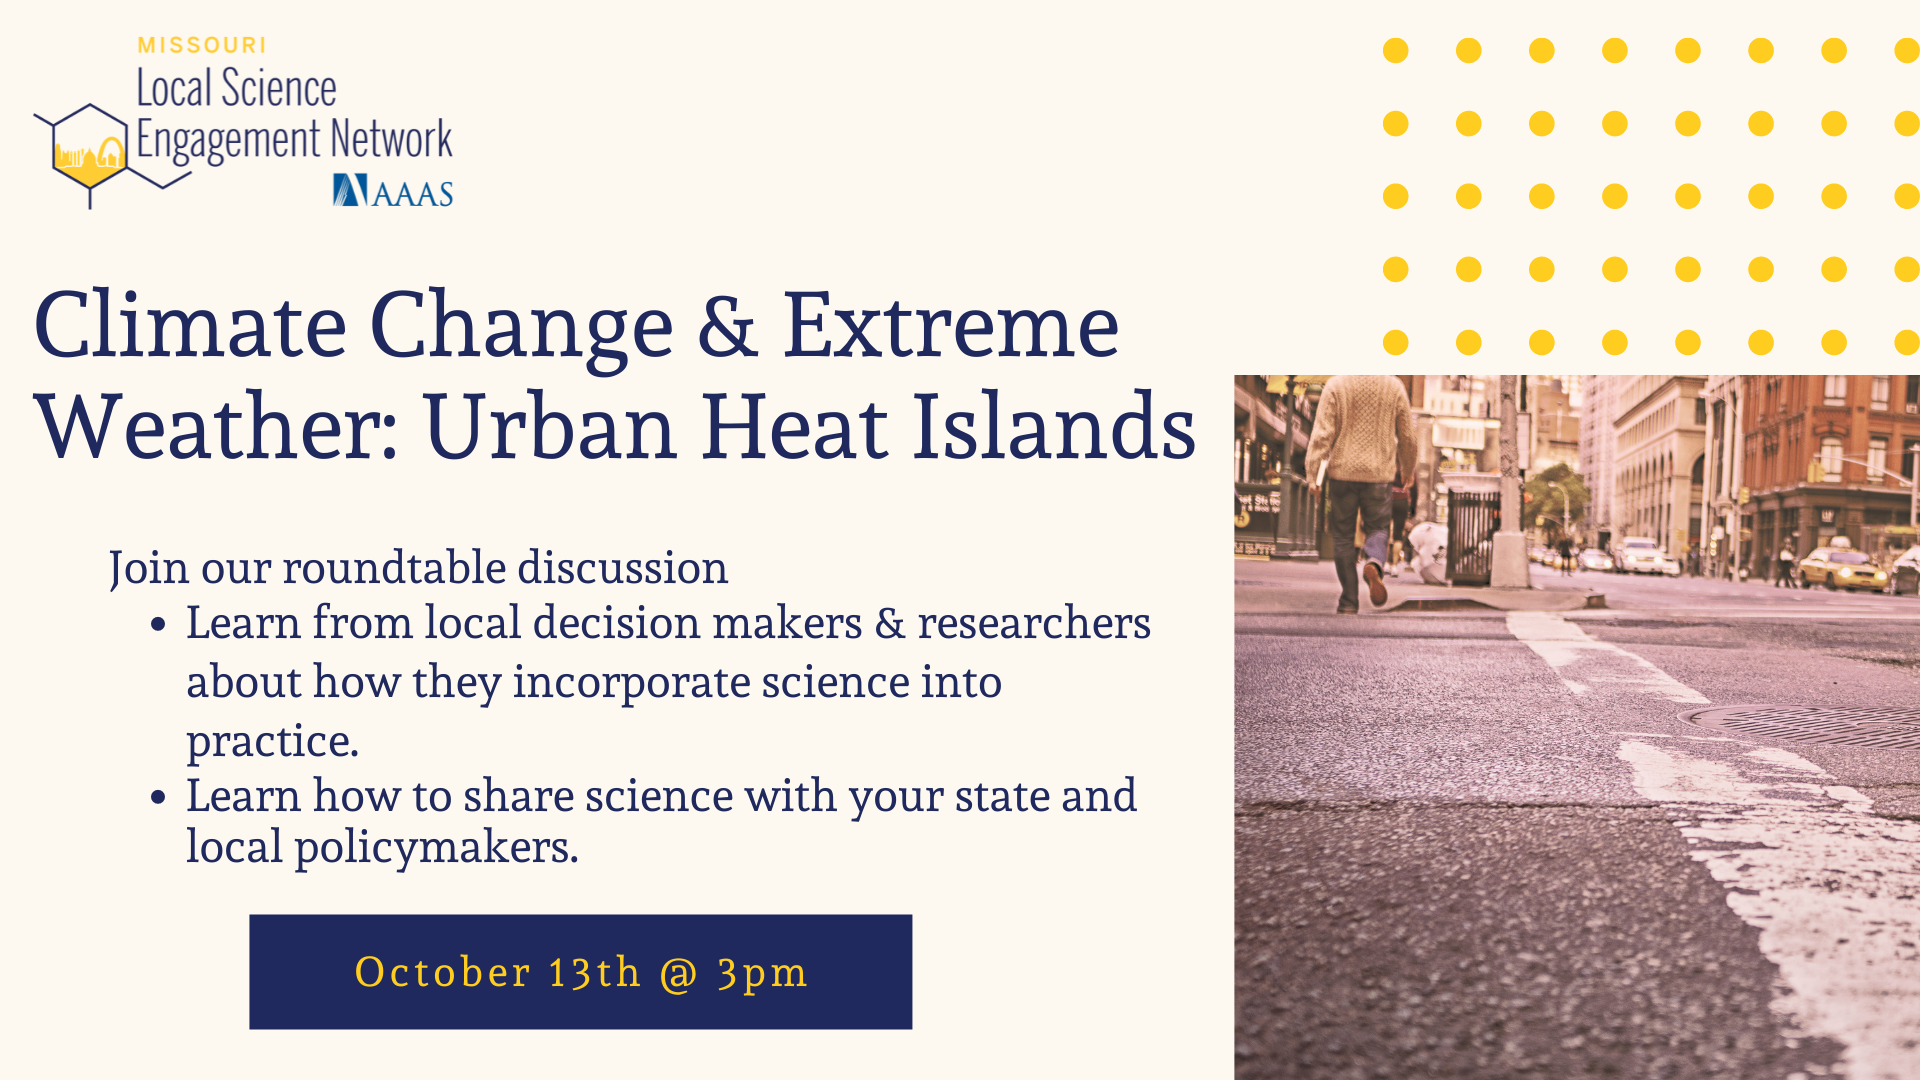 Climate Change & Extreme Weather: Urban Heat Islands